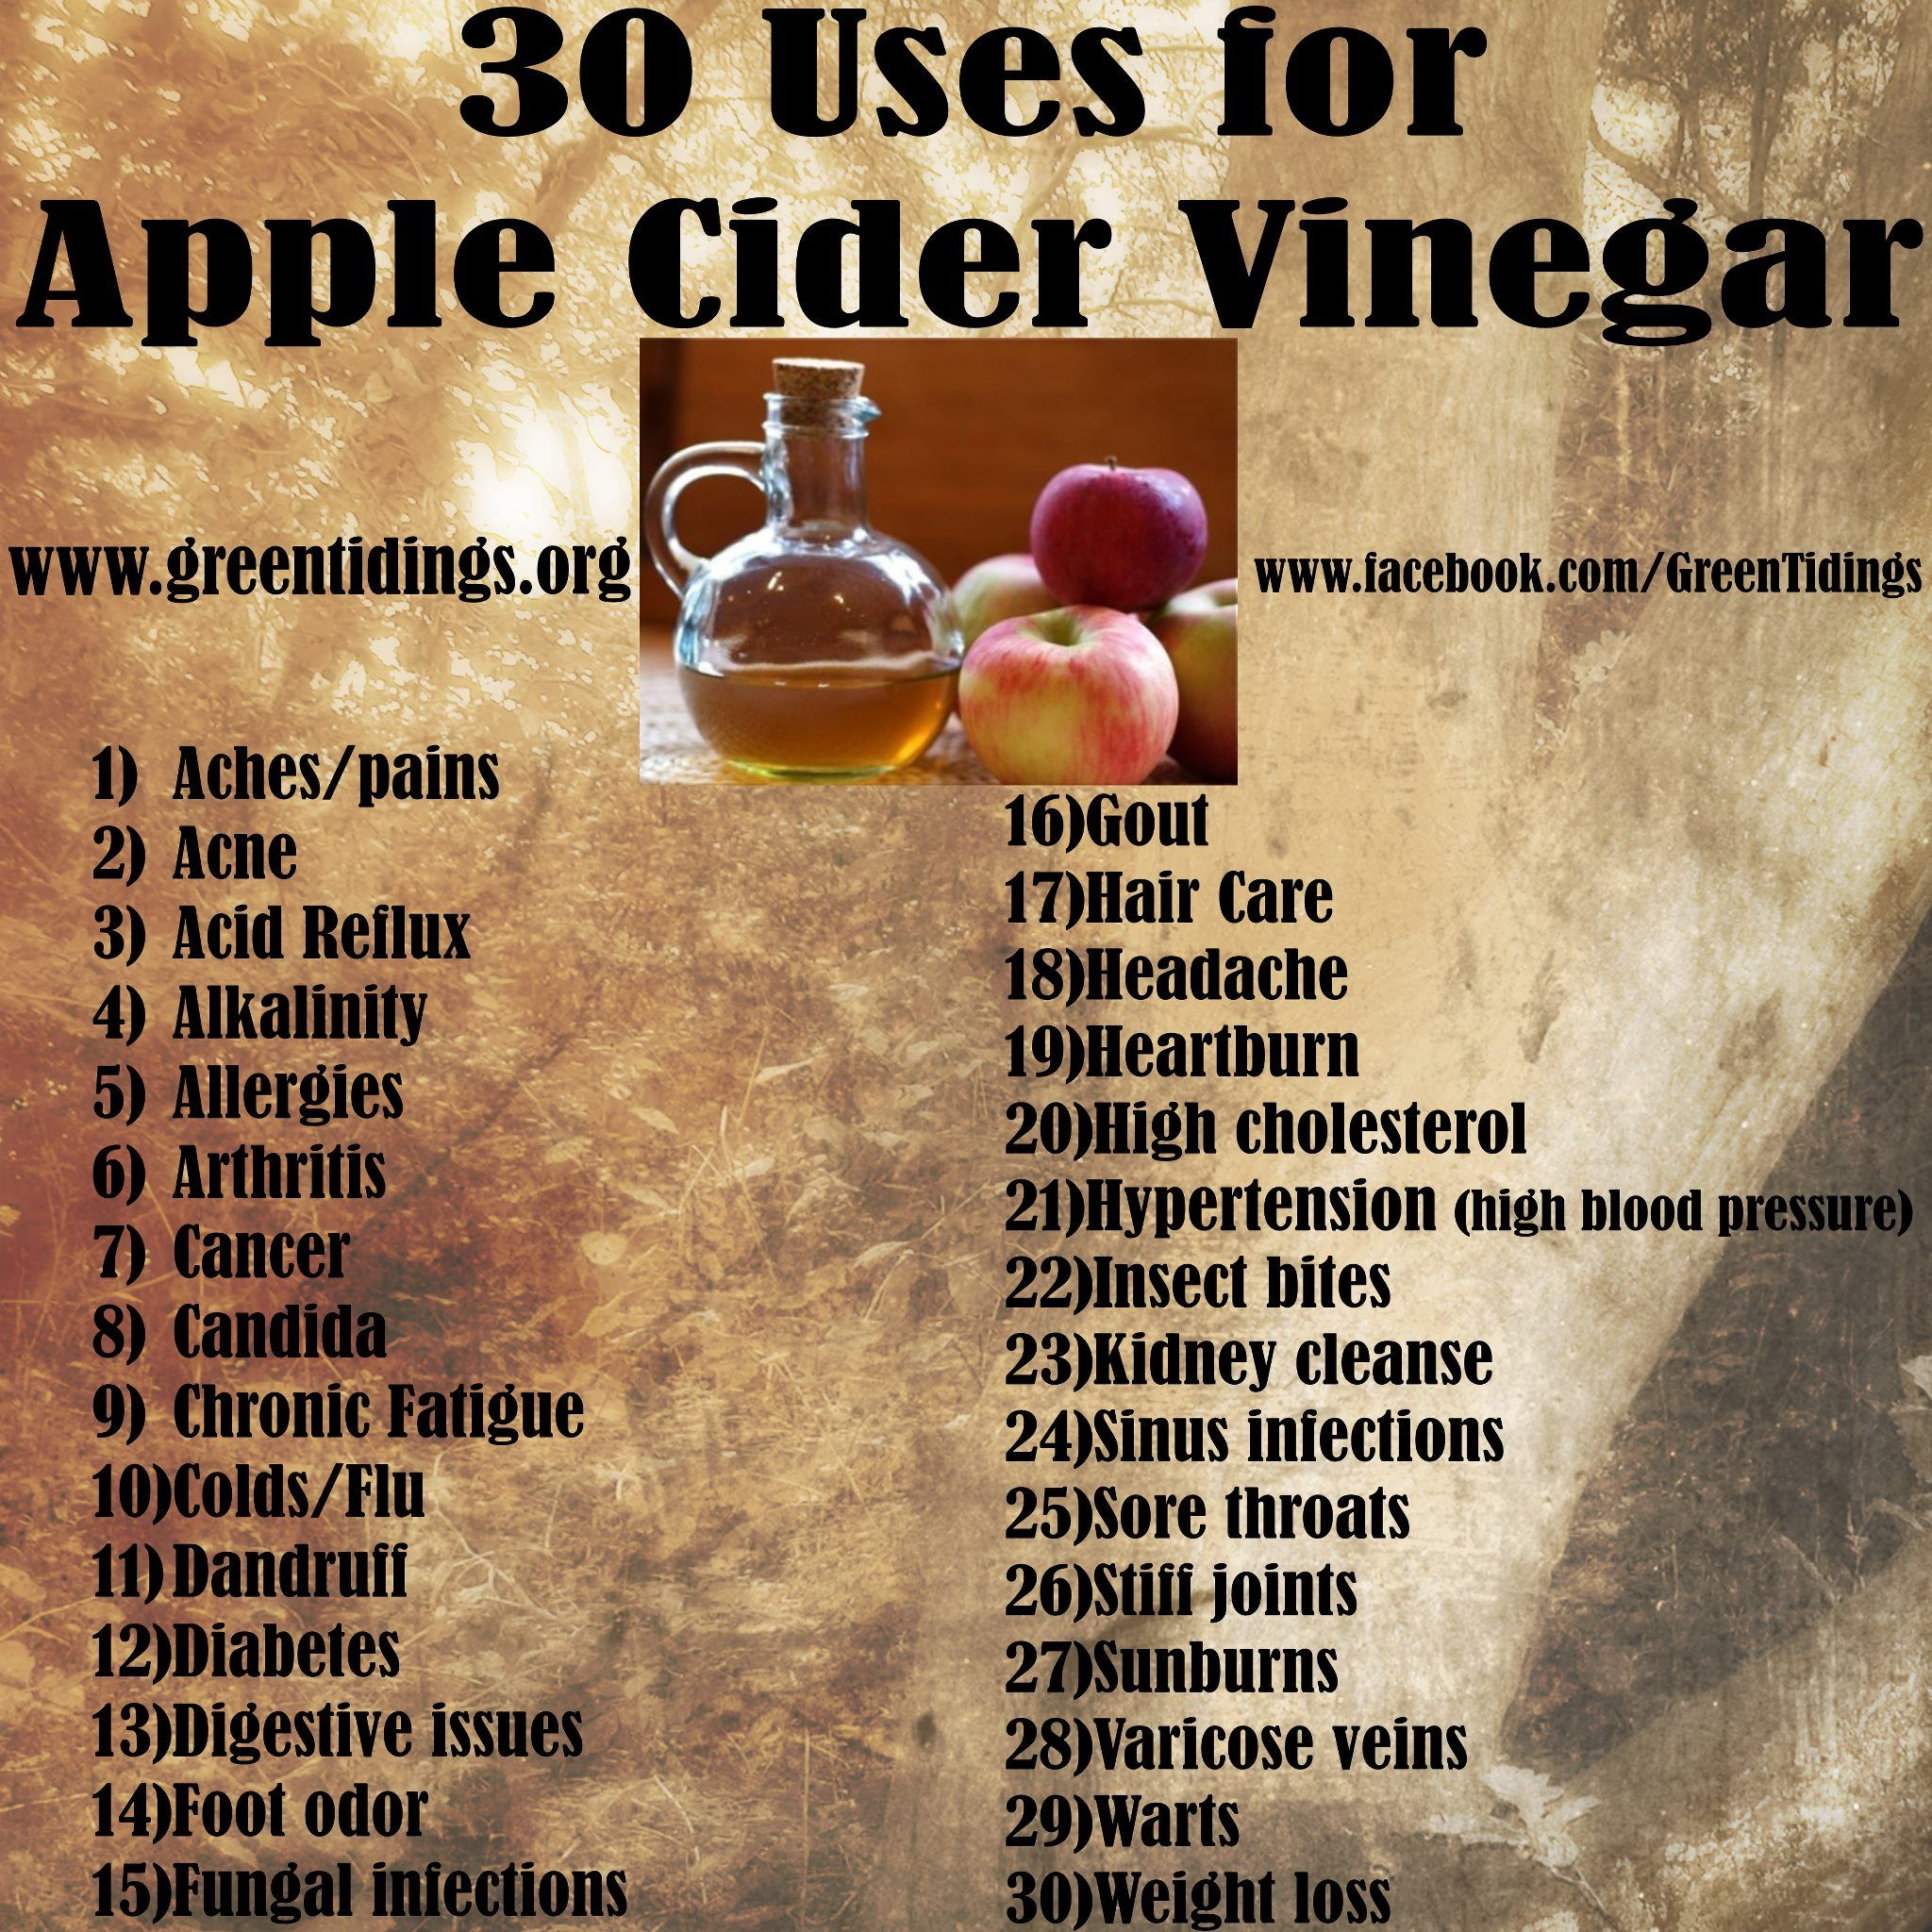 Starting my 21 Day liver cleanse tomorrow  1 tbsp of cider, 4 oz of